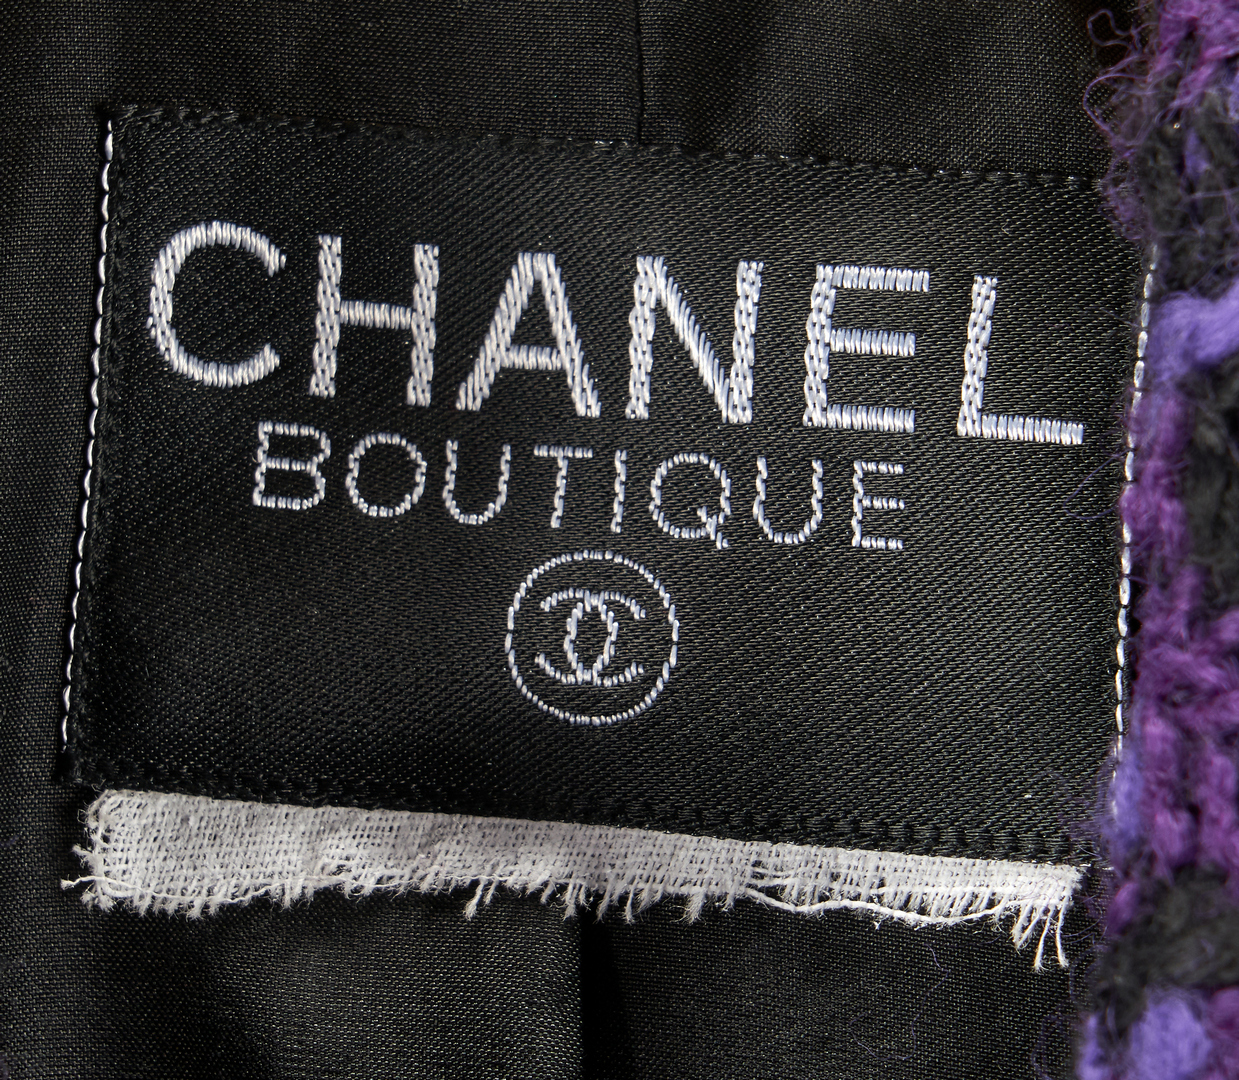 Lot 703: 6 Chanel Designer Wool Clothing Items, incl. Suit